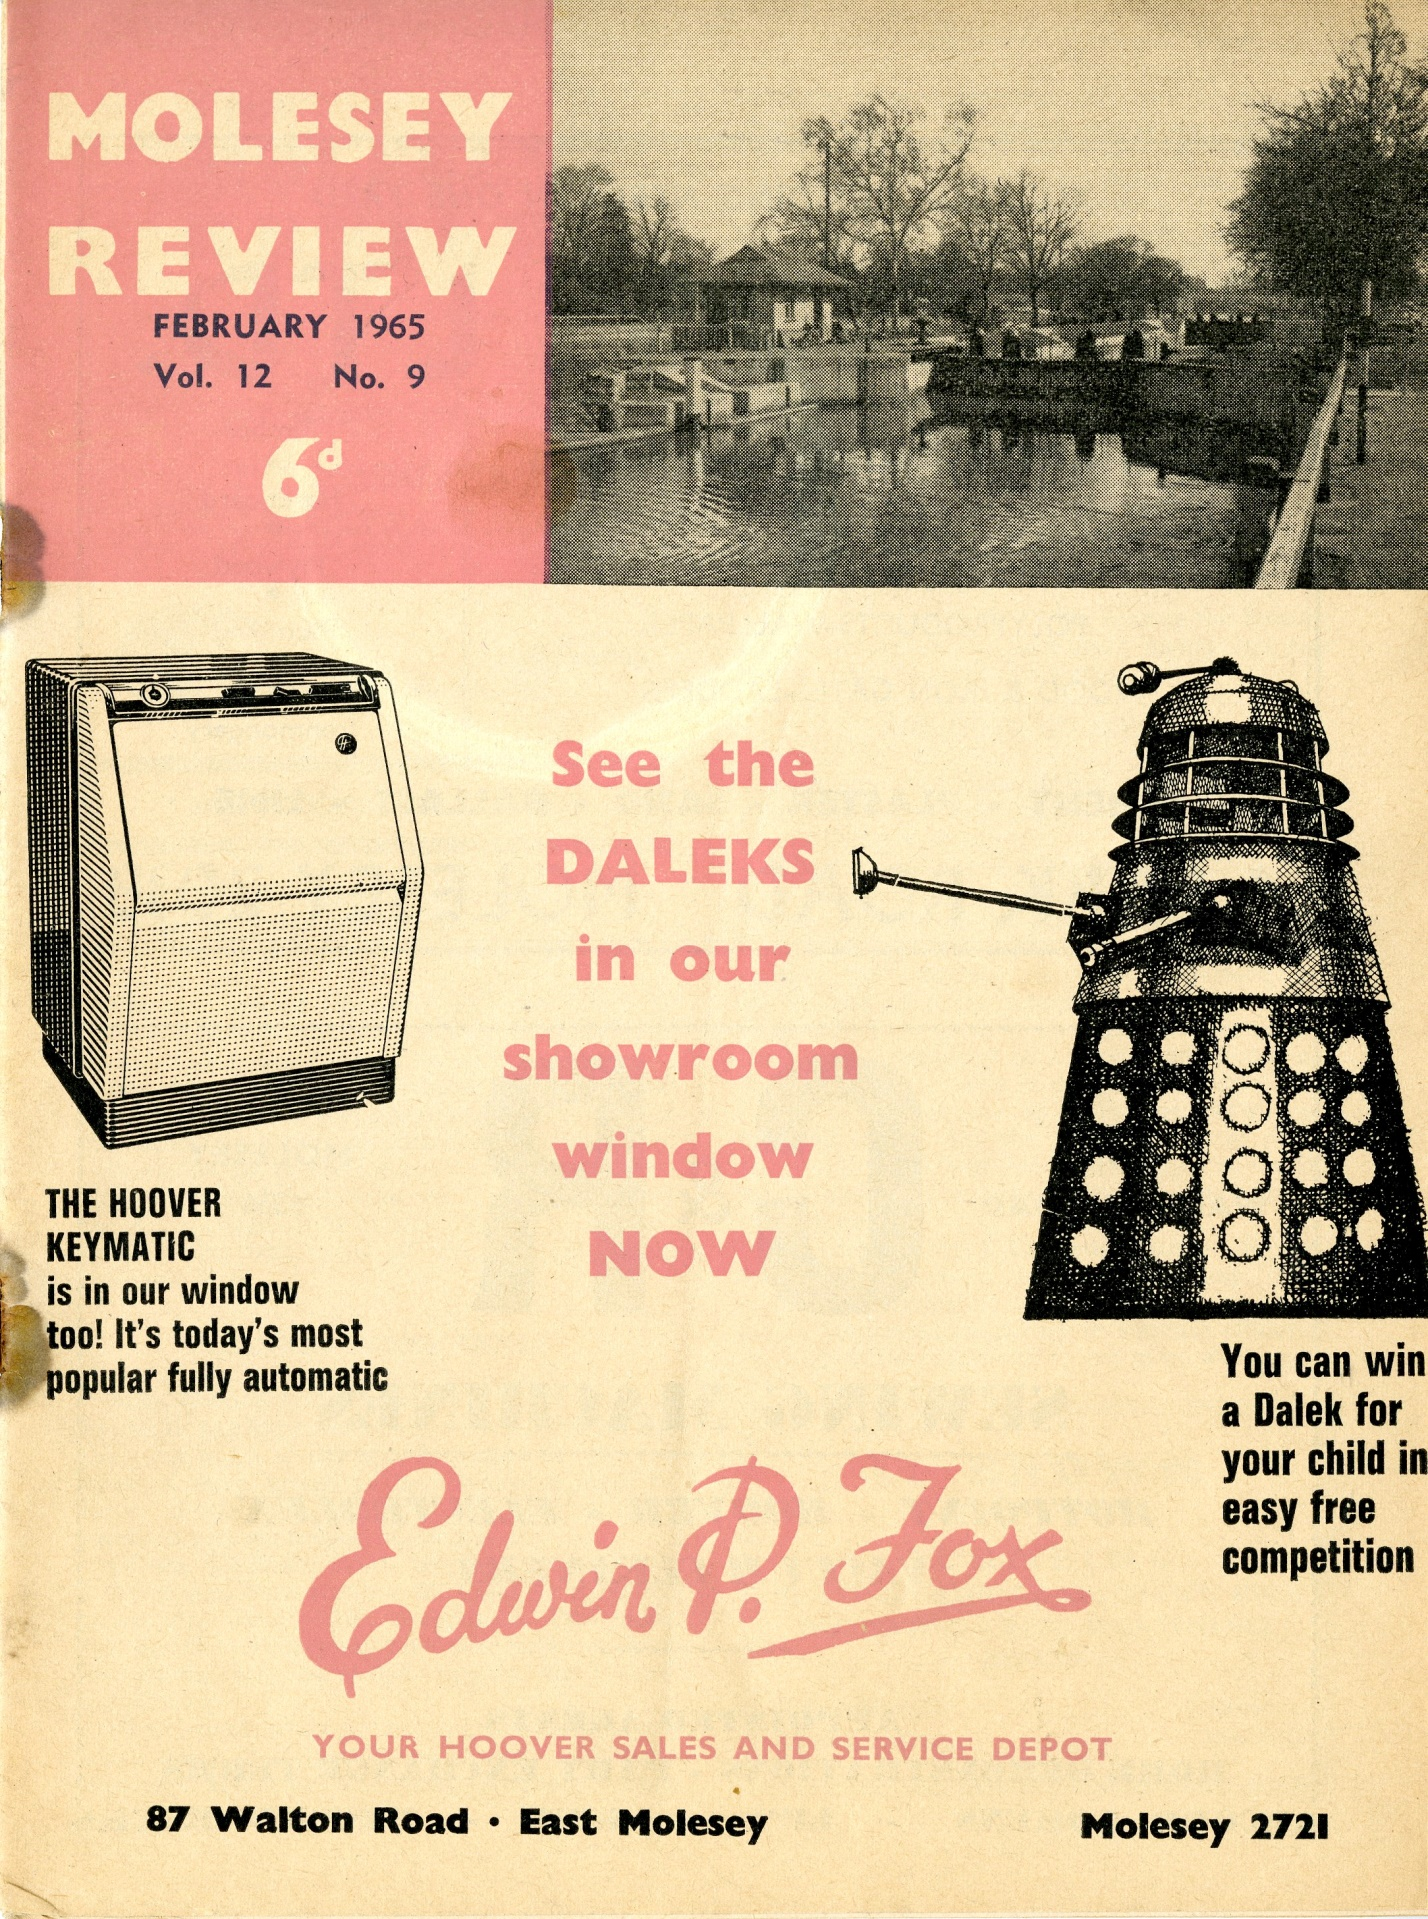 Molesey Review, East Moseley, Surrey, February 1965